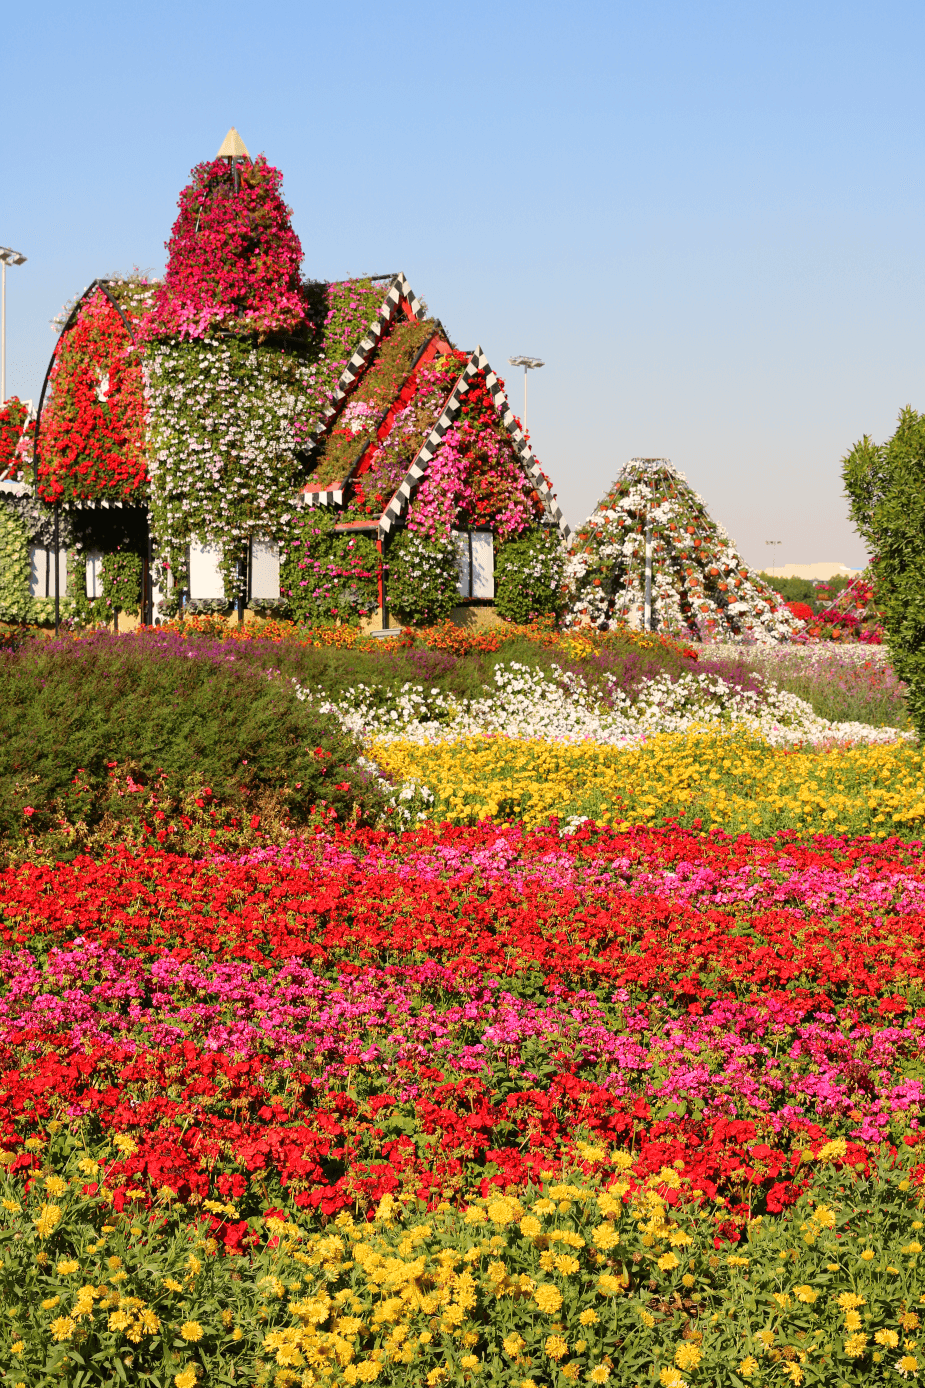 Dubai Miracle Garden 2016 A Desert Oasis Of 45 Million Flowers World Travel Adventurers